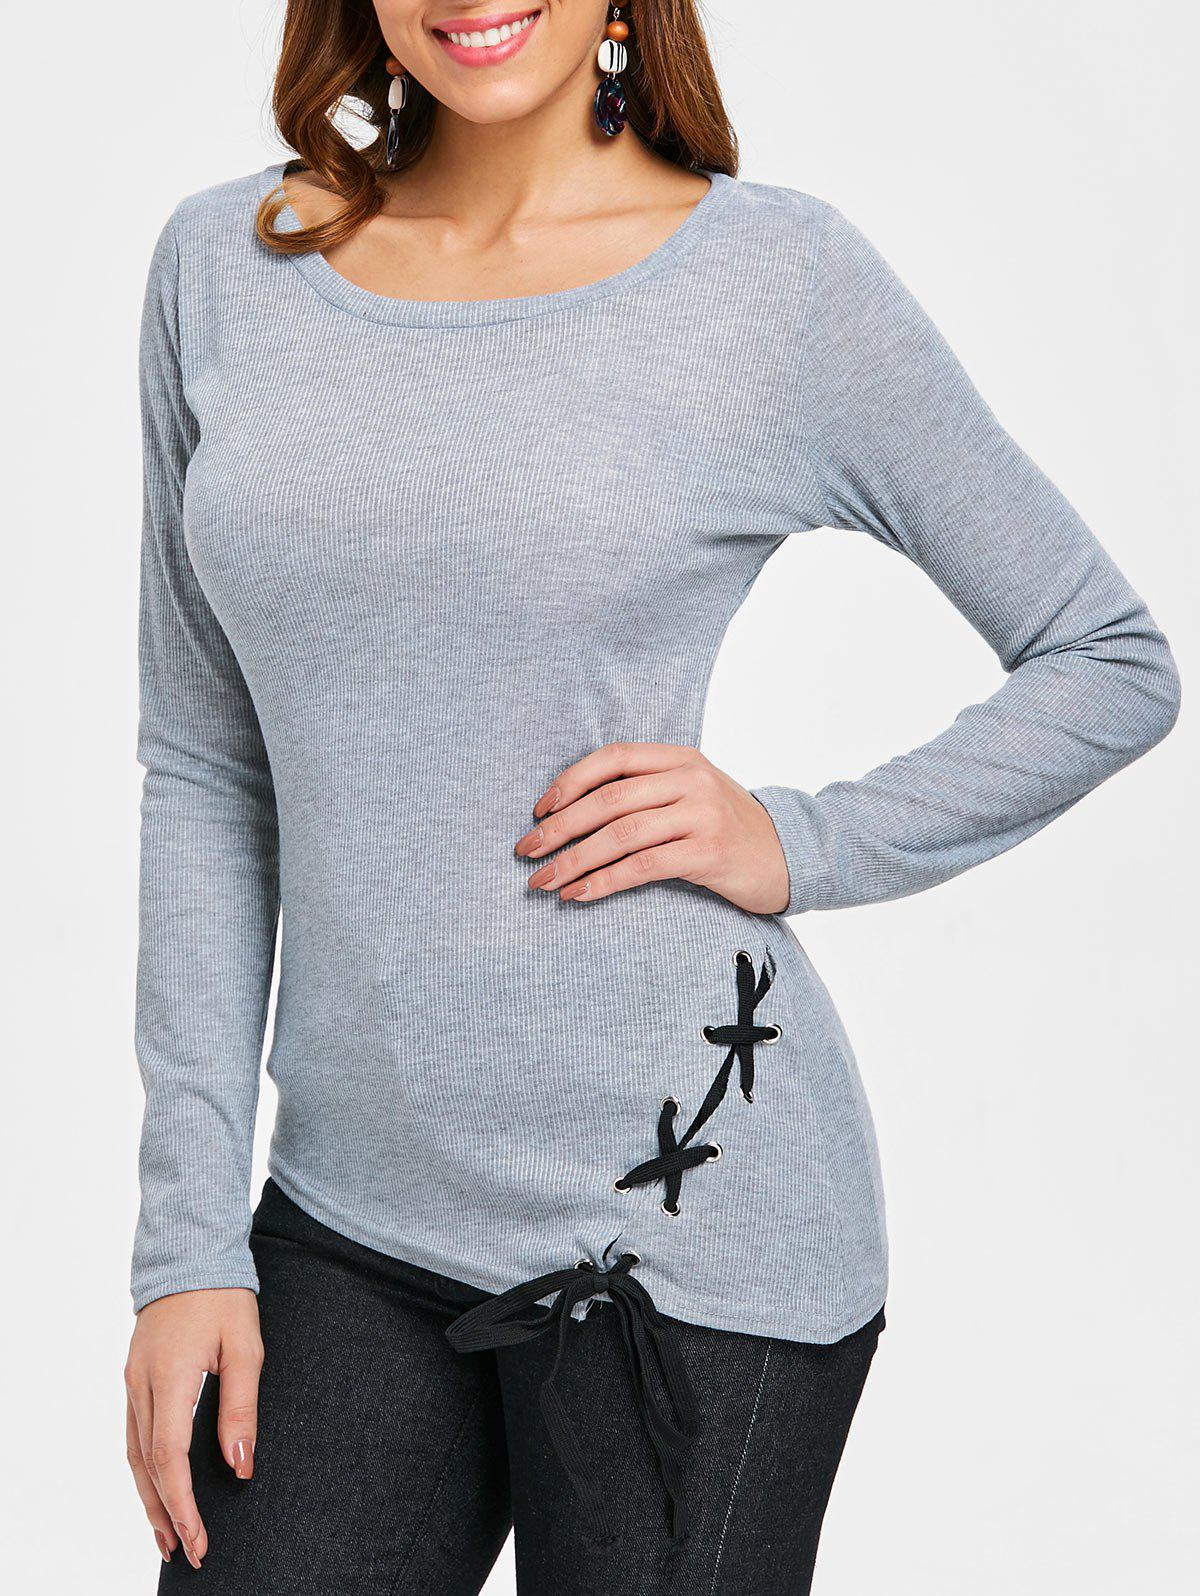 Criss Cross Fitted Top - GRAY S